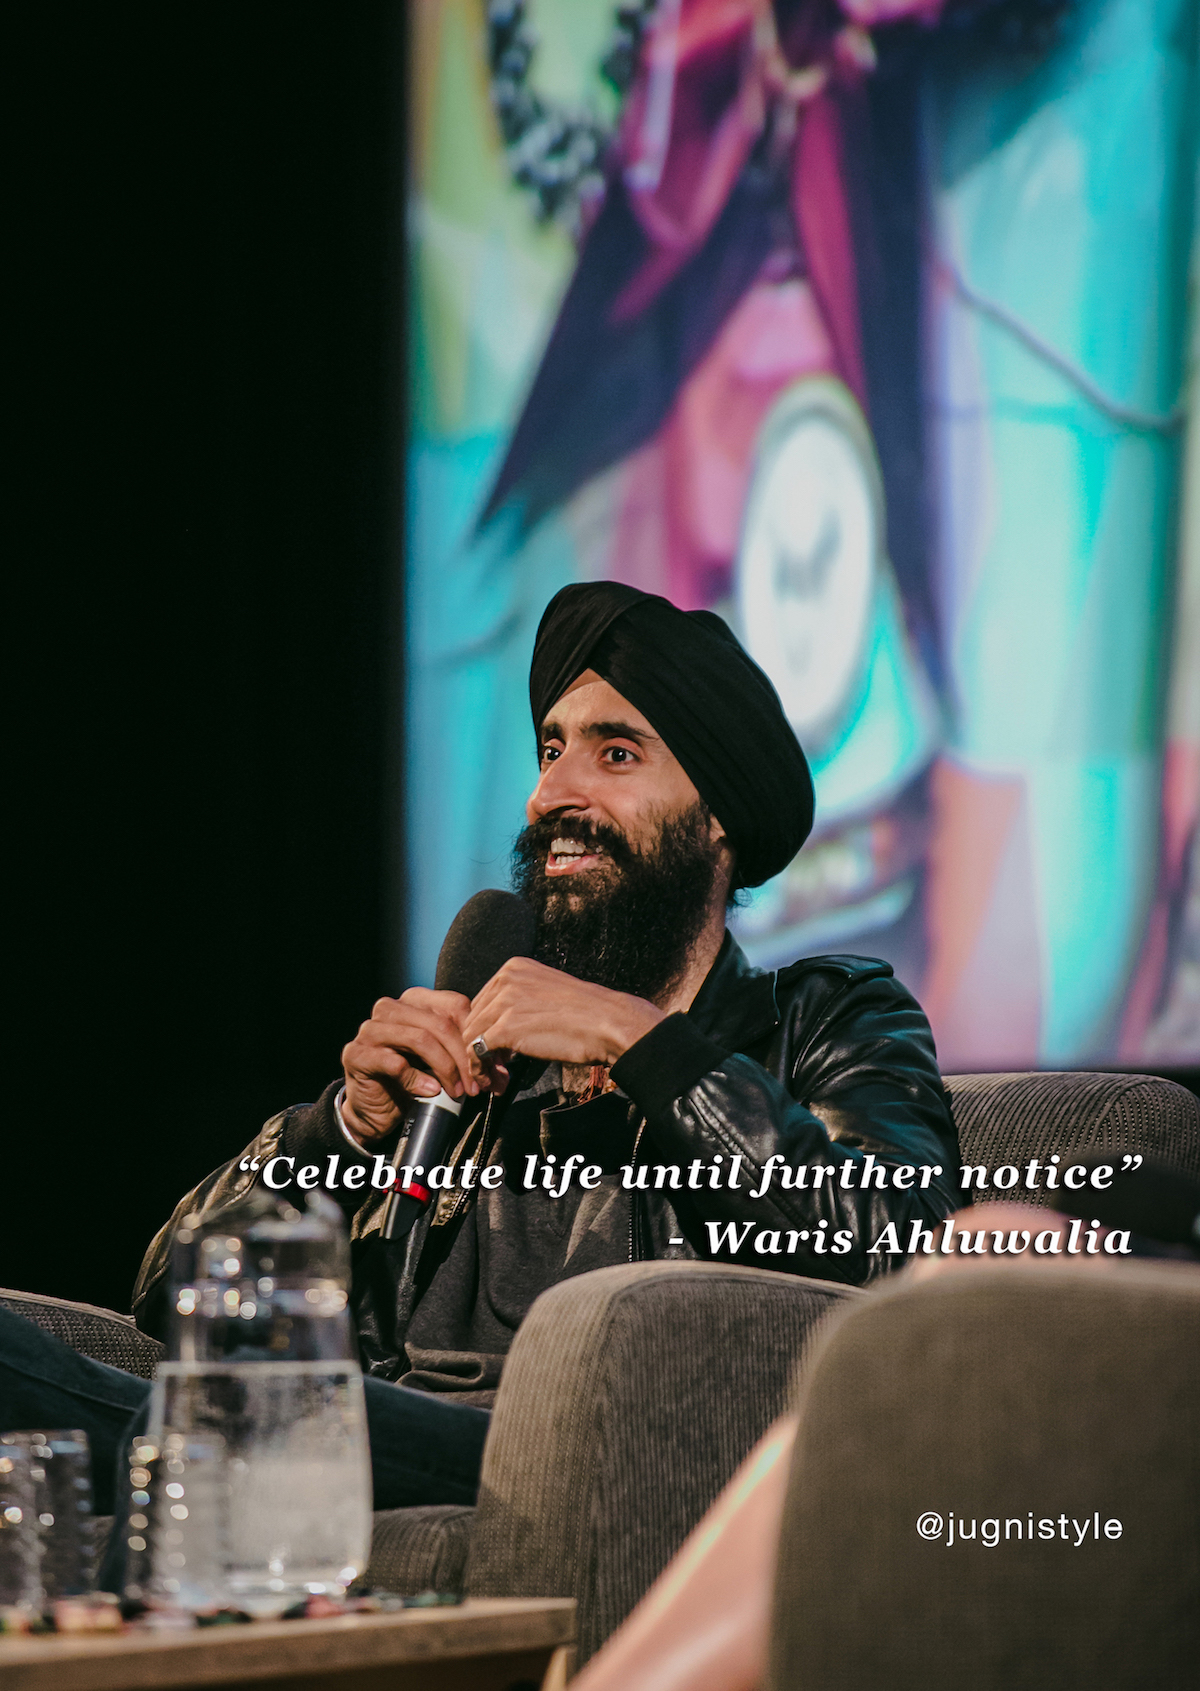 Waris Ahluwalia Podcast Image copy